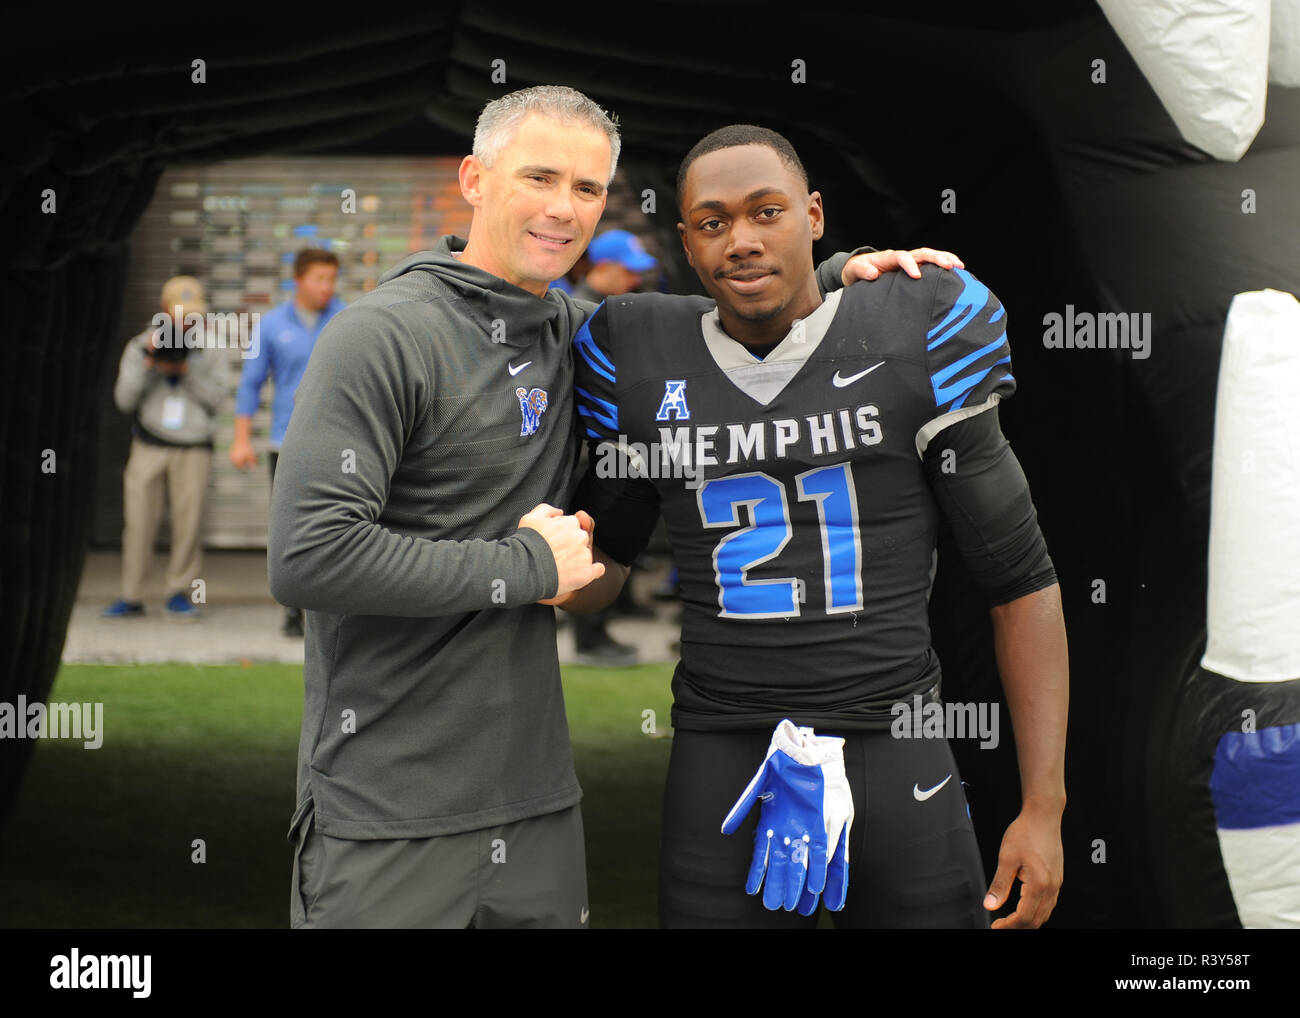 Memphis Tn Usa 23rd Nov 2018 Memphis Tigers Head Coach Mike Norvell Left Poses With Defensive Back Ross Anderson 21 Prior To The Ncaa Division I Football Game Between The University Of